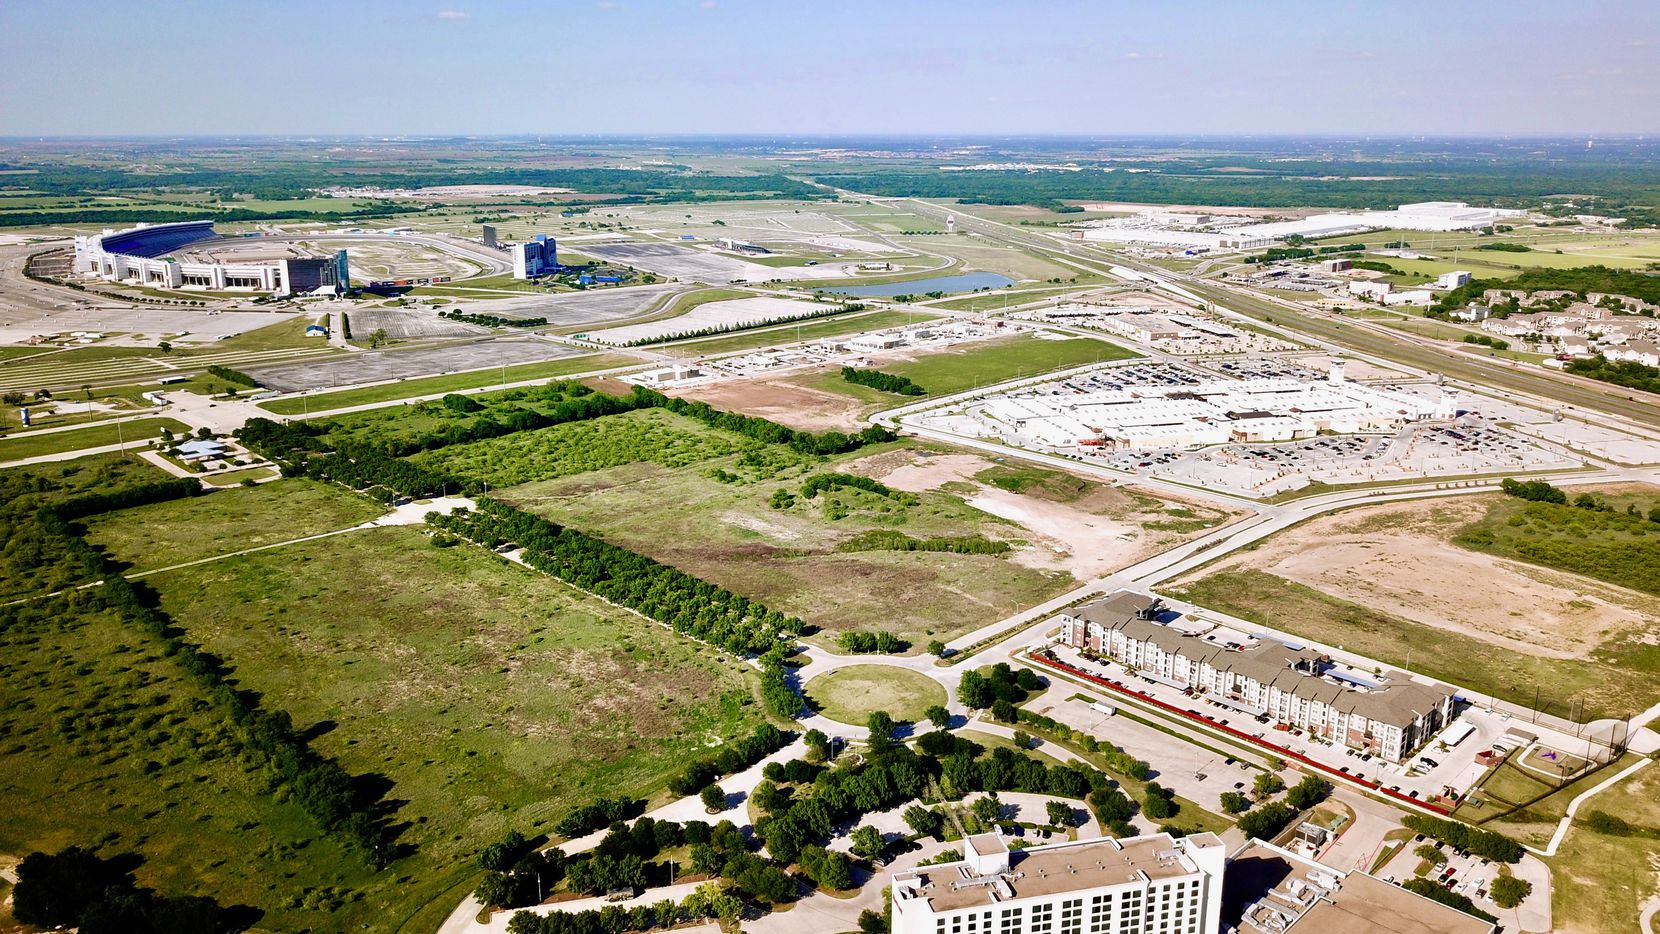 Dallas developer KDC is planning a new office campus in the 500-acre Champions Circle development in North Fort Worth.